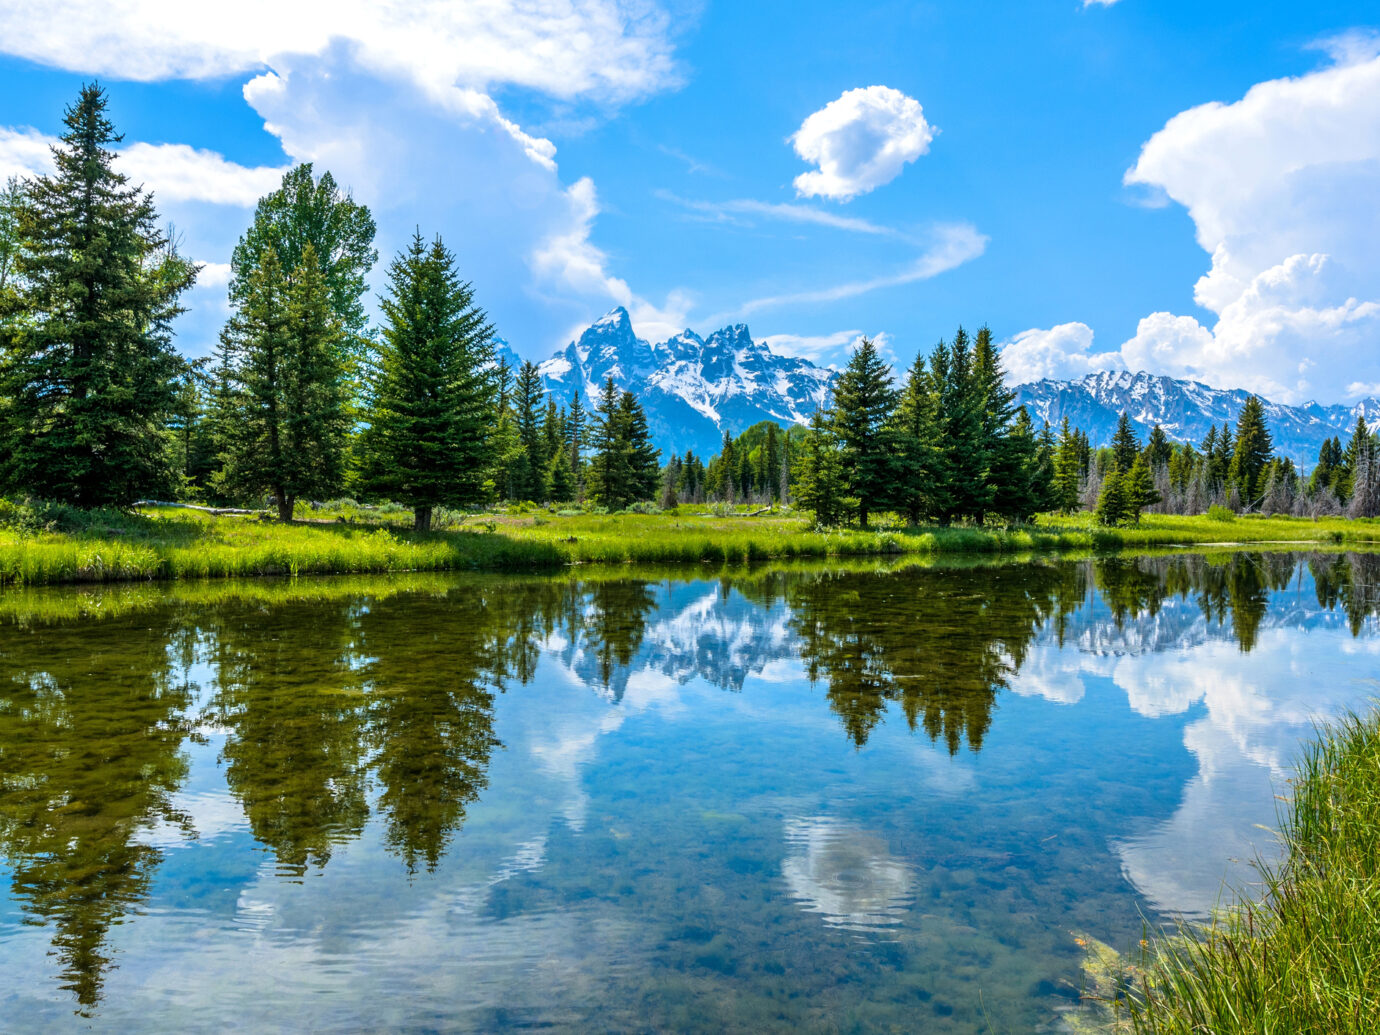 A panoramic spring view of clear and calm Snake River flowing at base of Teton Range in Grand Teton National Park, Wyoming, USA.